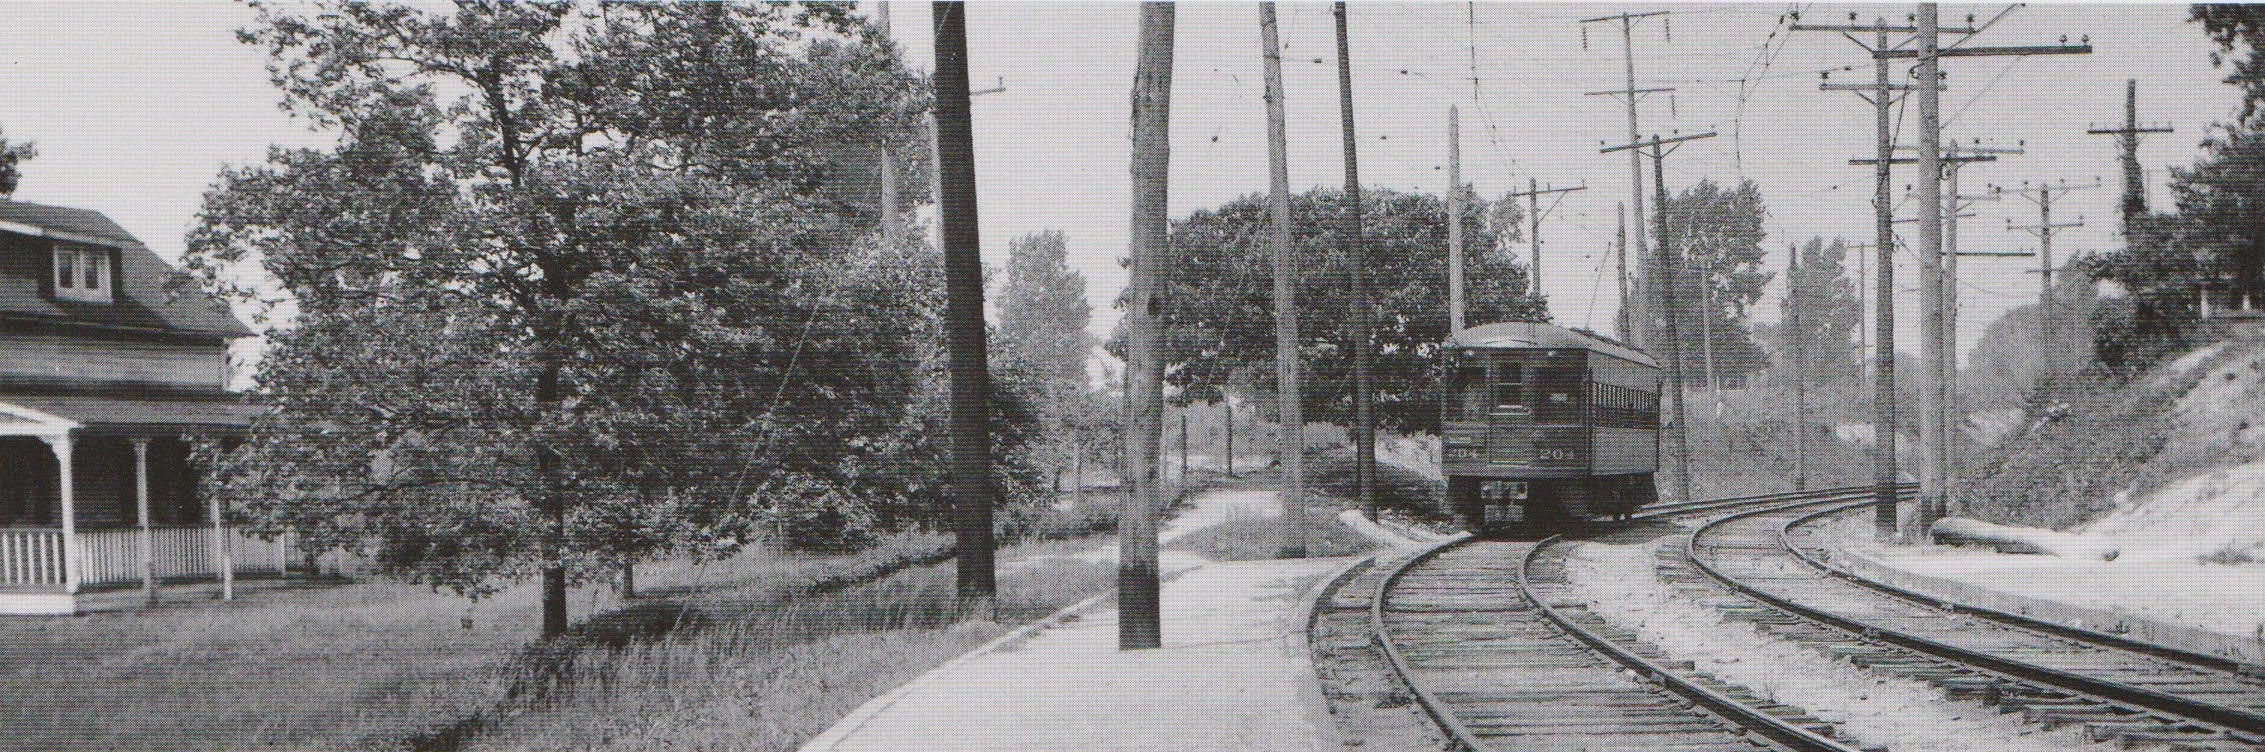 """Top: Baltimore & Annapolis Car #92 approaches Shipley Station heading North. Bottom: Baltimore & Annapolis Car #204 approaches Shipley Station heading South. Shipley Station, Maryland Date: May 1936. Source: J.P. Shuman Photo. from """"Baltimore Light Rail, Then & Now"""" by Herbert H. Harwood Jr."""